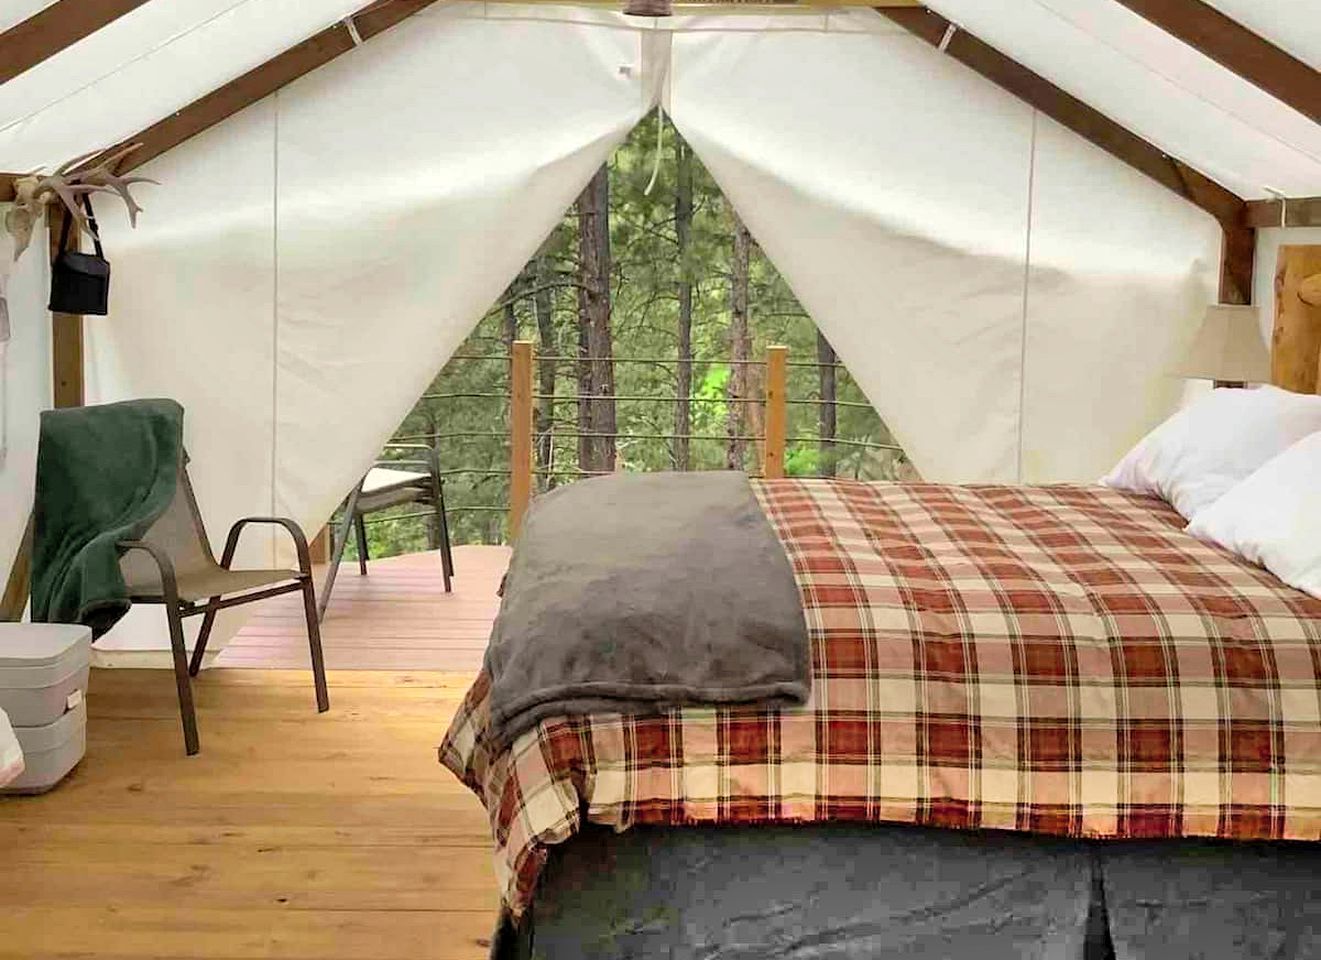 This safari tent rental is ideal for luxury camping near Mount Rushmore, South Dakota